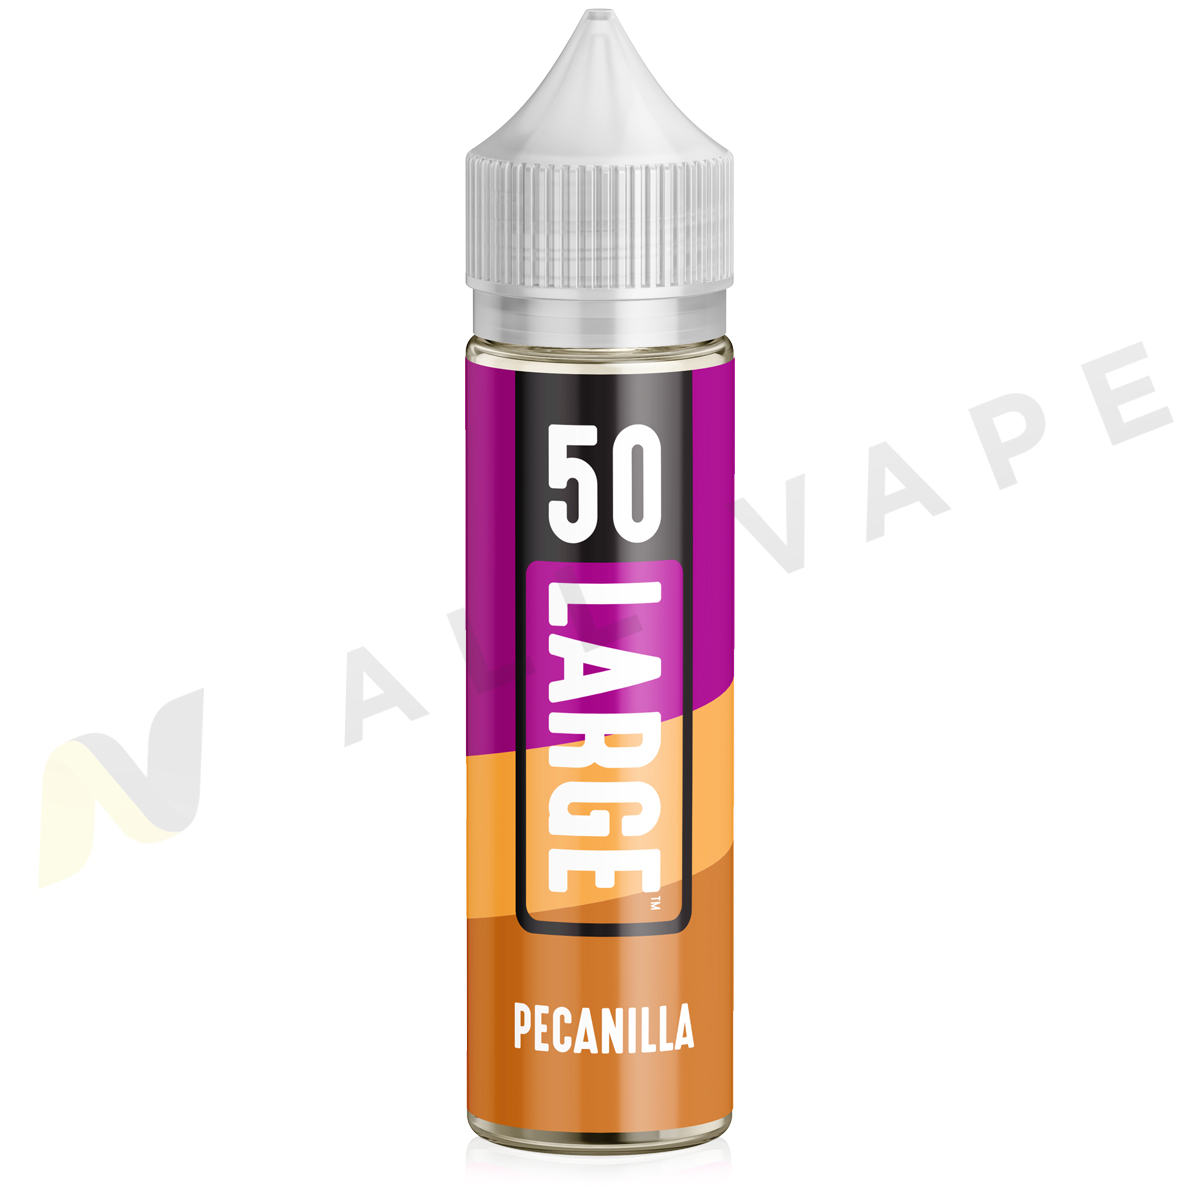 Pecanilla eLiquid by 50 Large 50ml